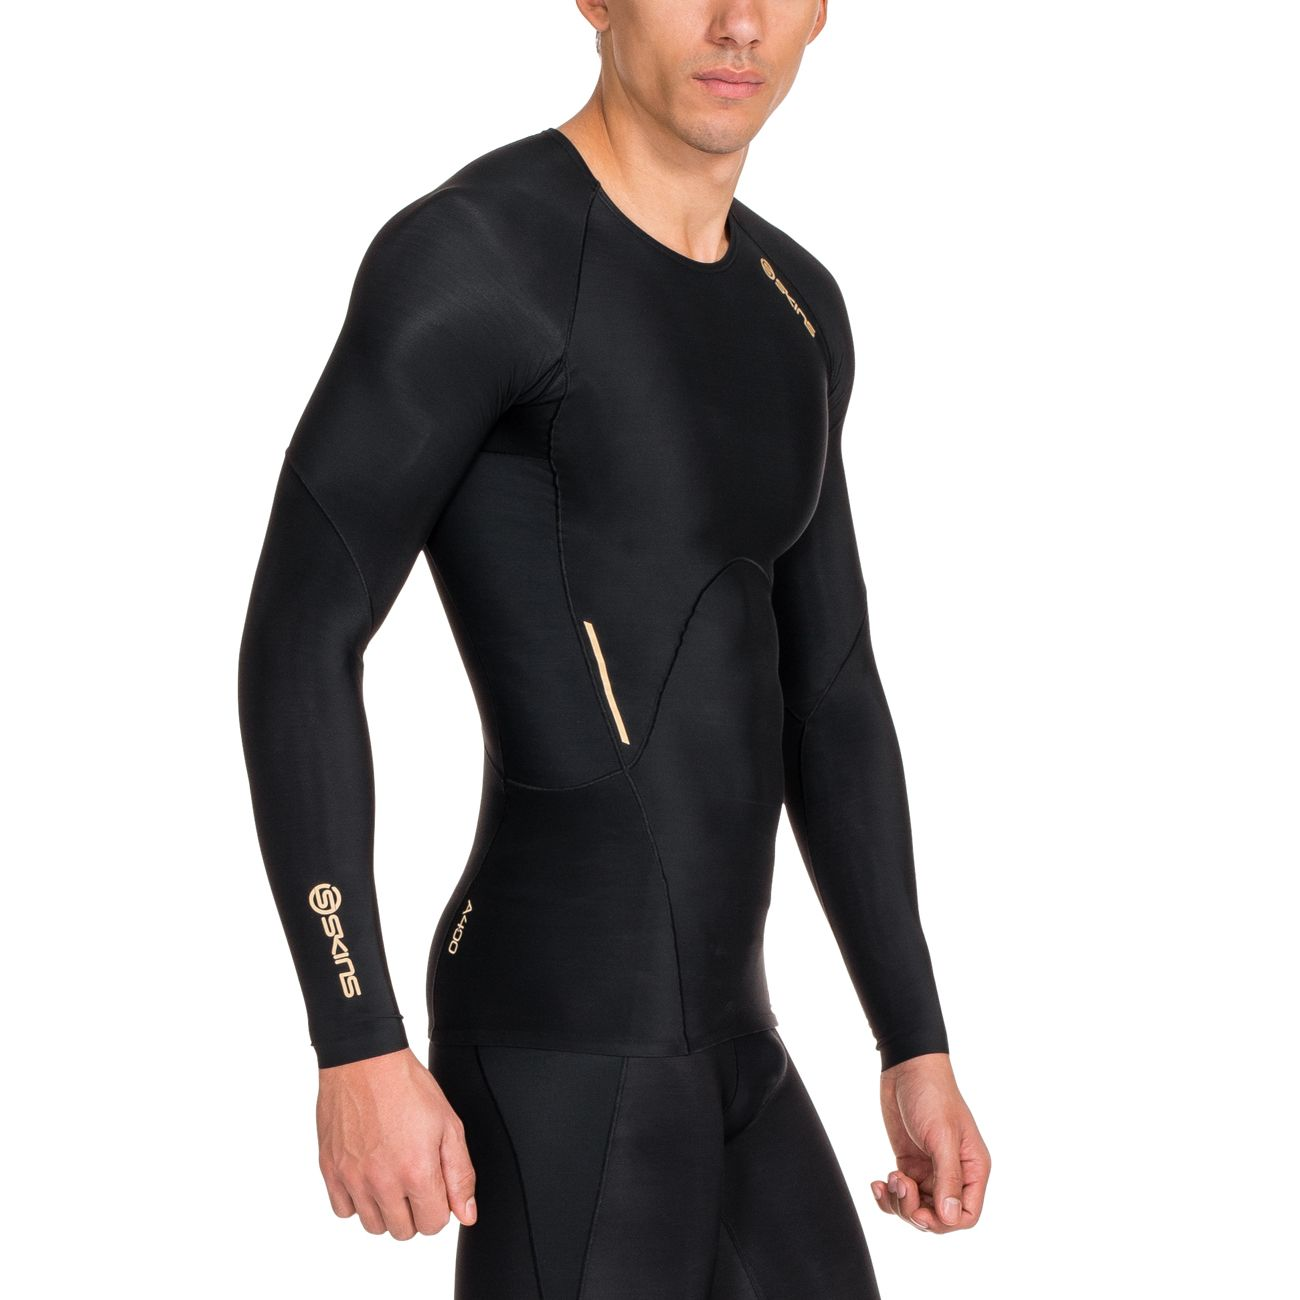 Long Course Compression Homme À Top shirt Skins Mens Sleeve Tee Pied De A400 Ny8wOvmn0